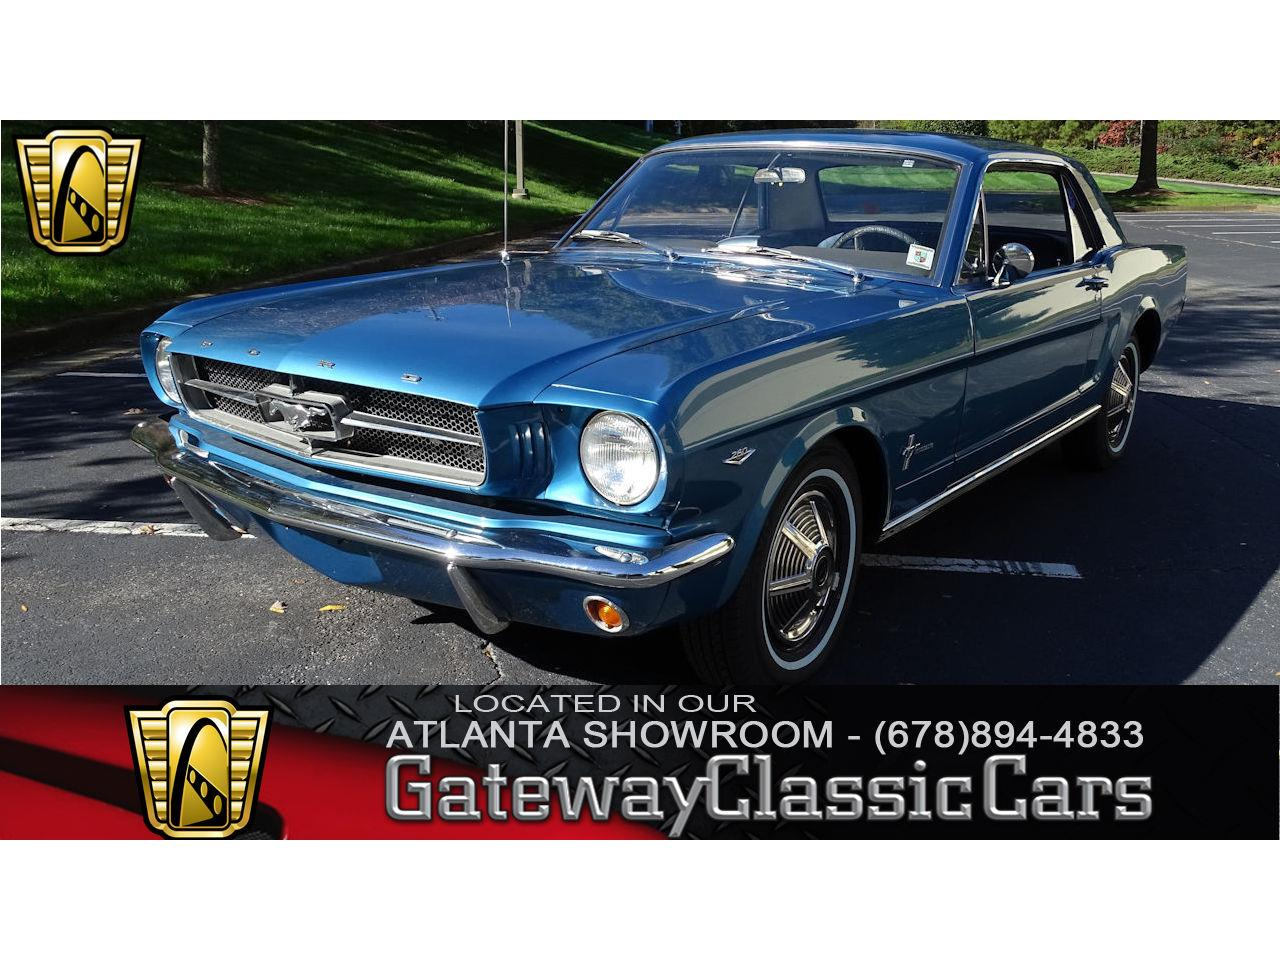 Large picture of 64 mustang ou7k